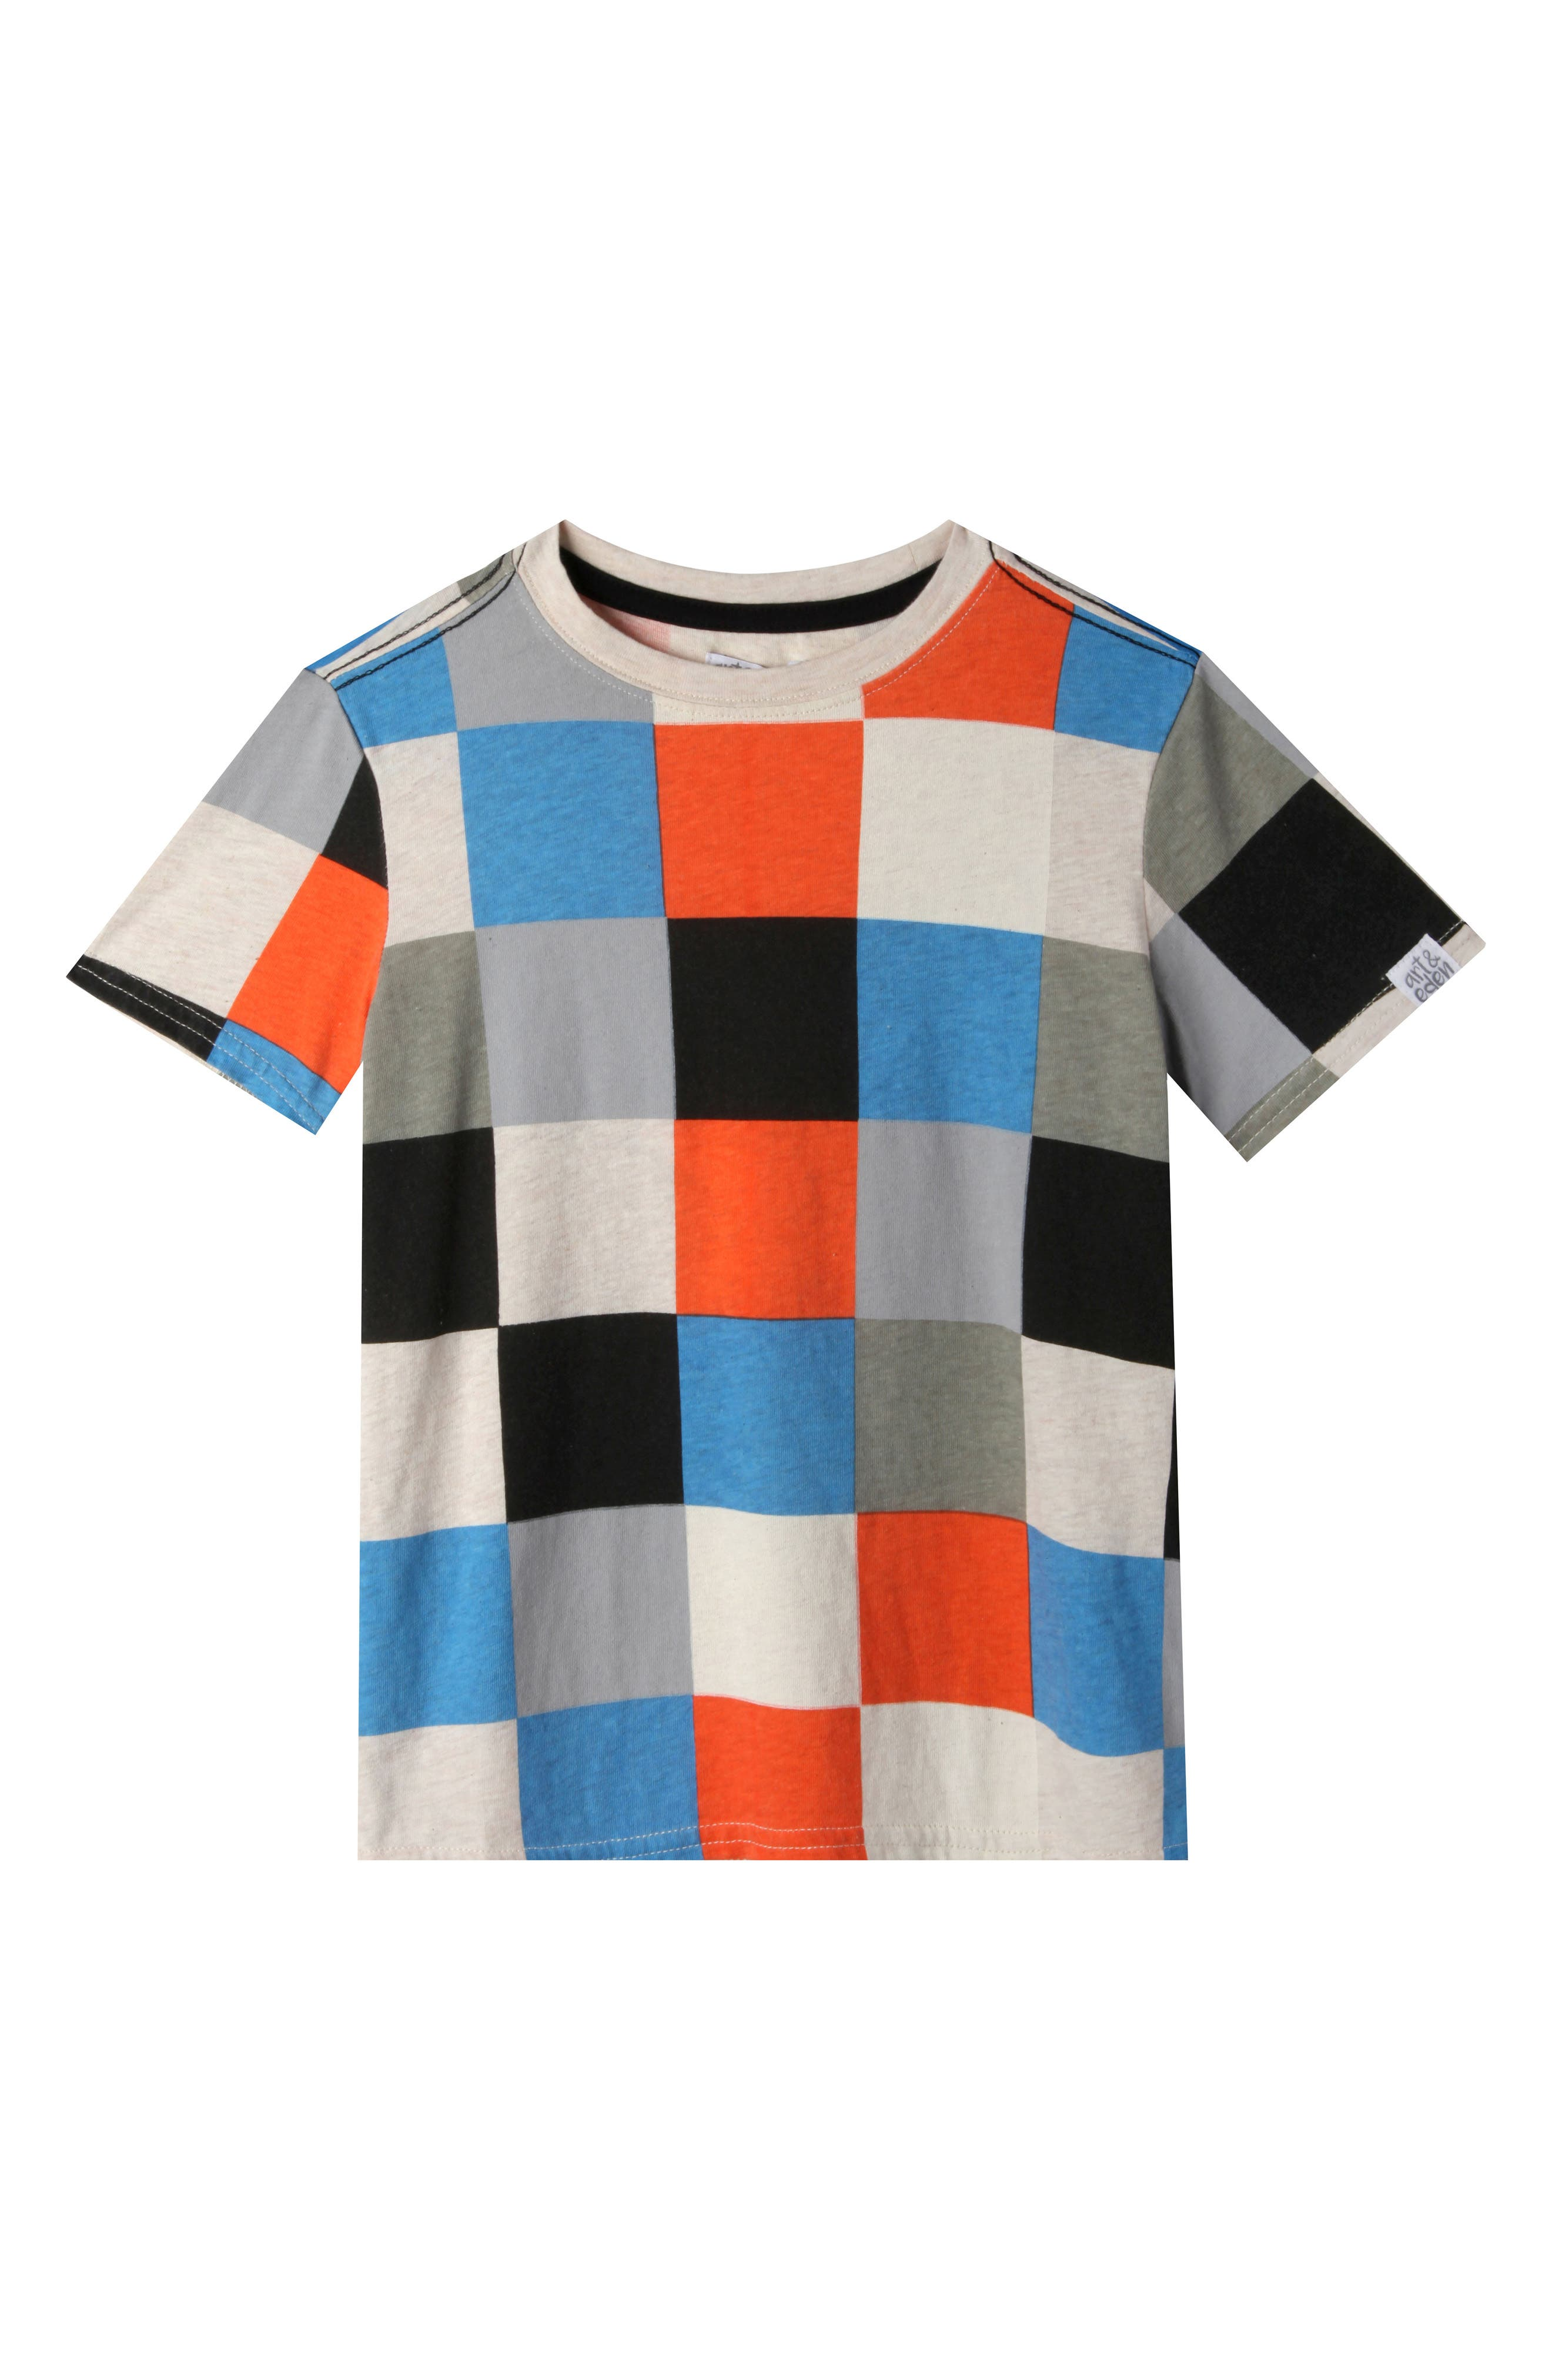 Main Image - Art & Eden Landon Check Organic Cotton T-Shirt (Toddler Boys, Little Boys & Big Boys)